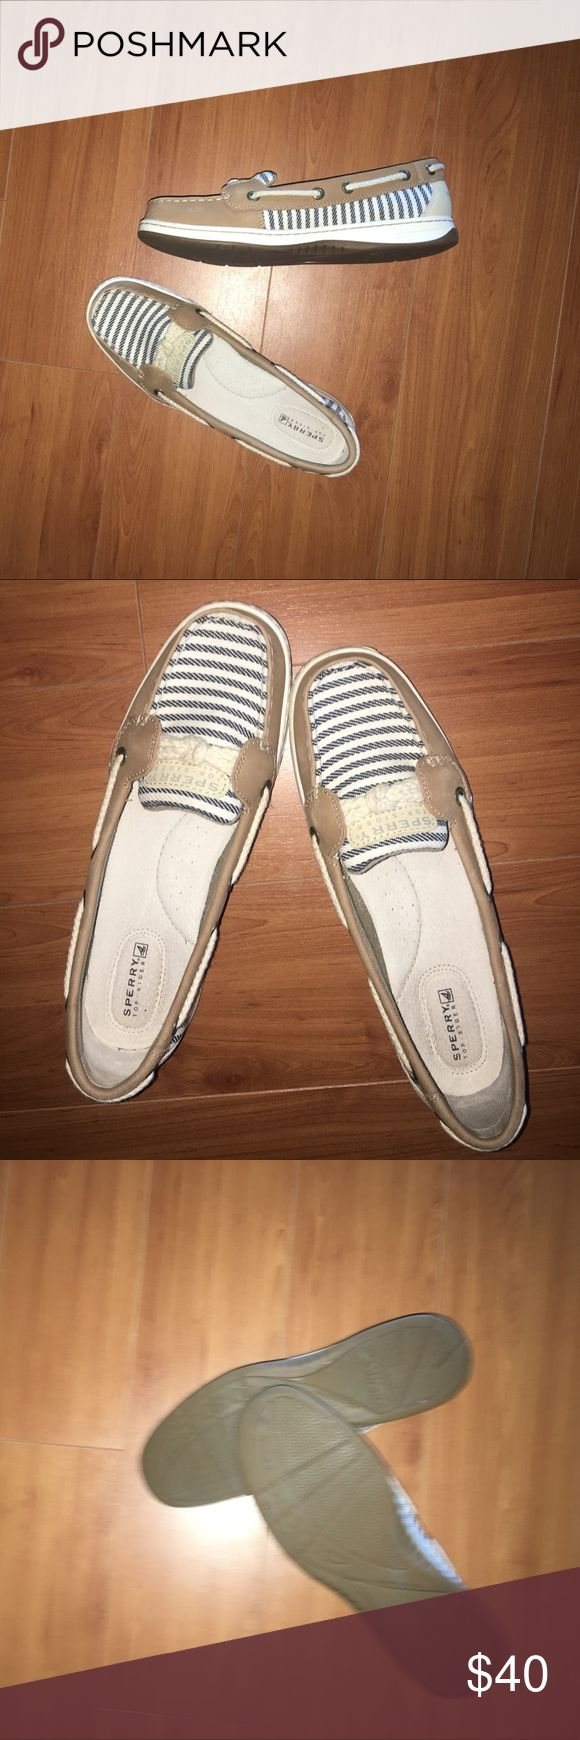 Sperry Top Sider Blue and white Stripe with Rope Detailing Sperry Top-Sider Shoes Flats & Loafers